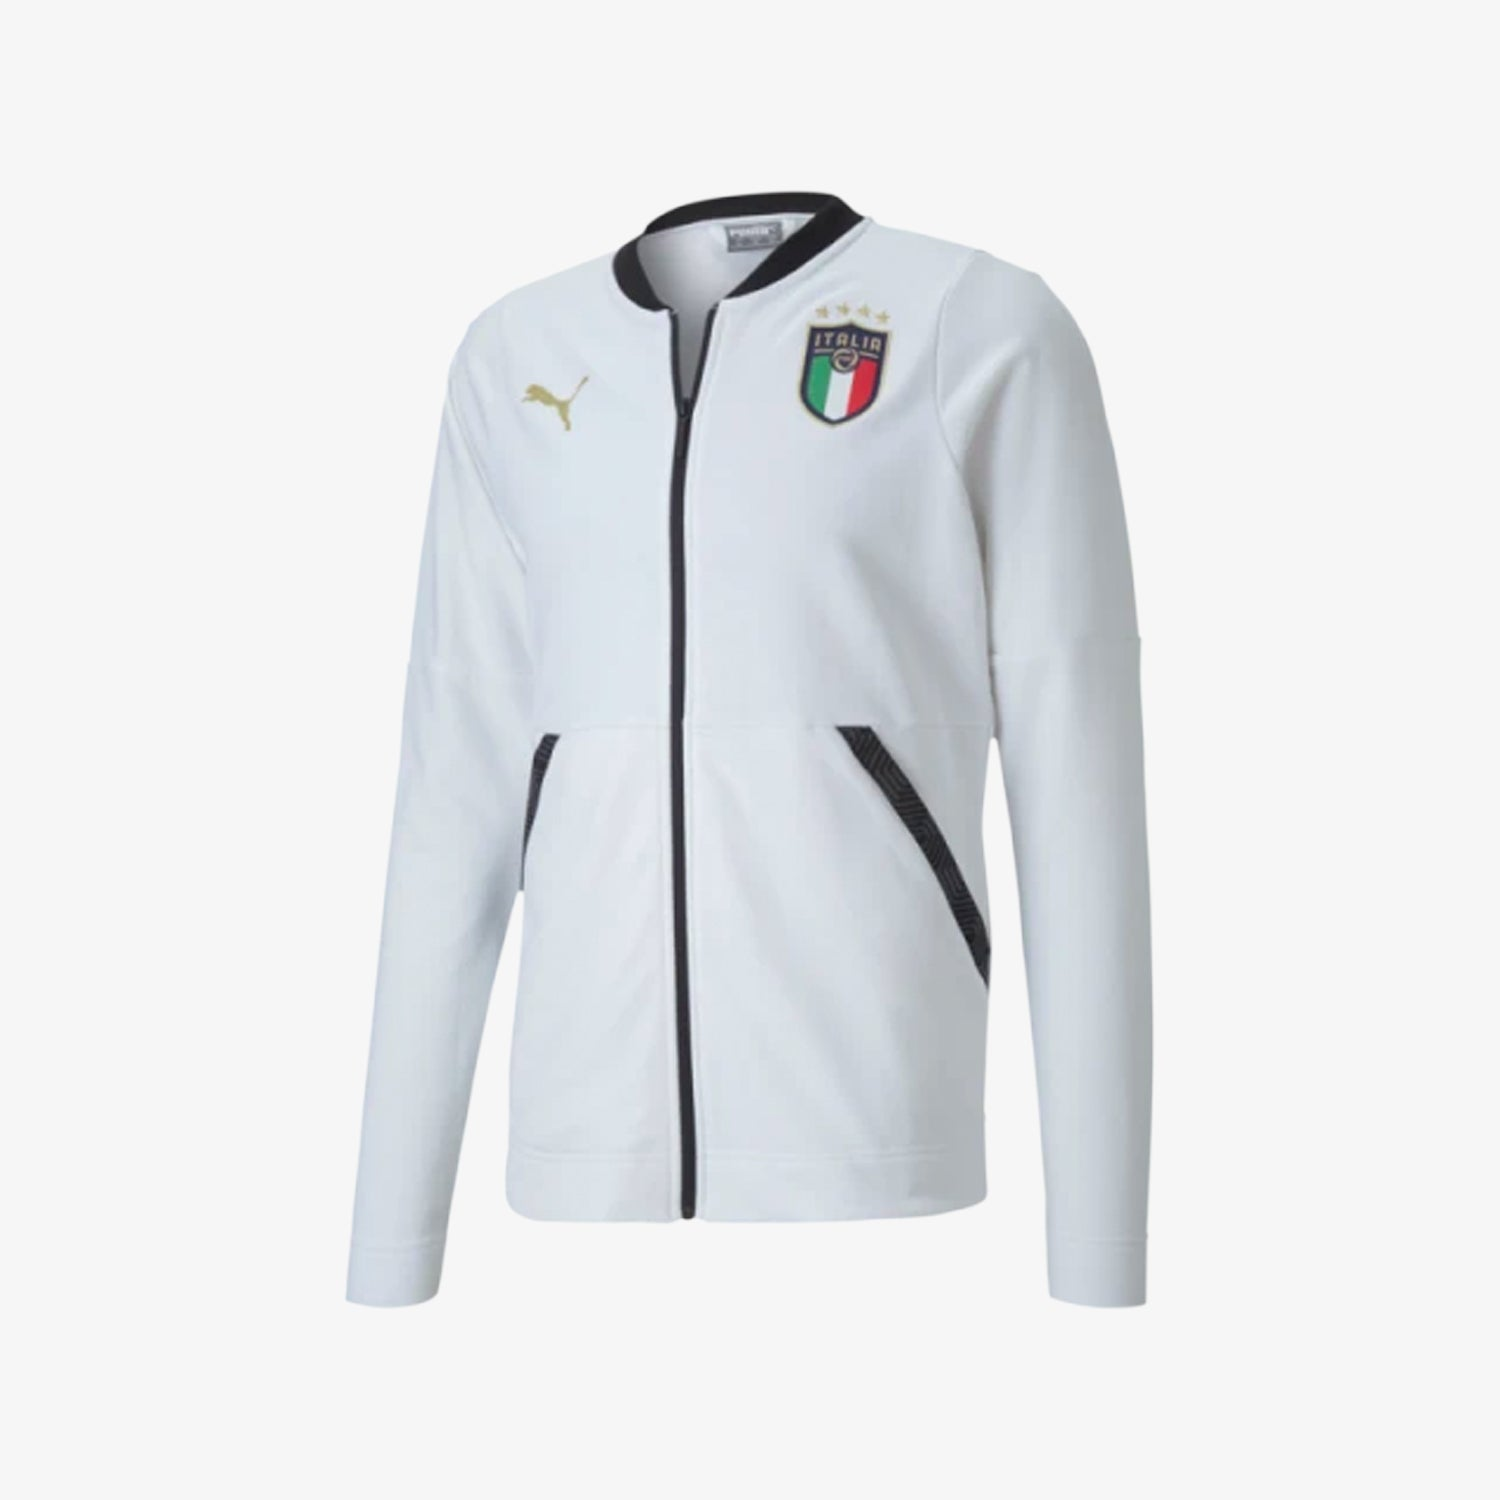 Men's Italy Track Soccer Jacket